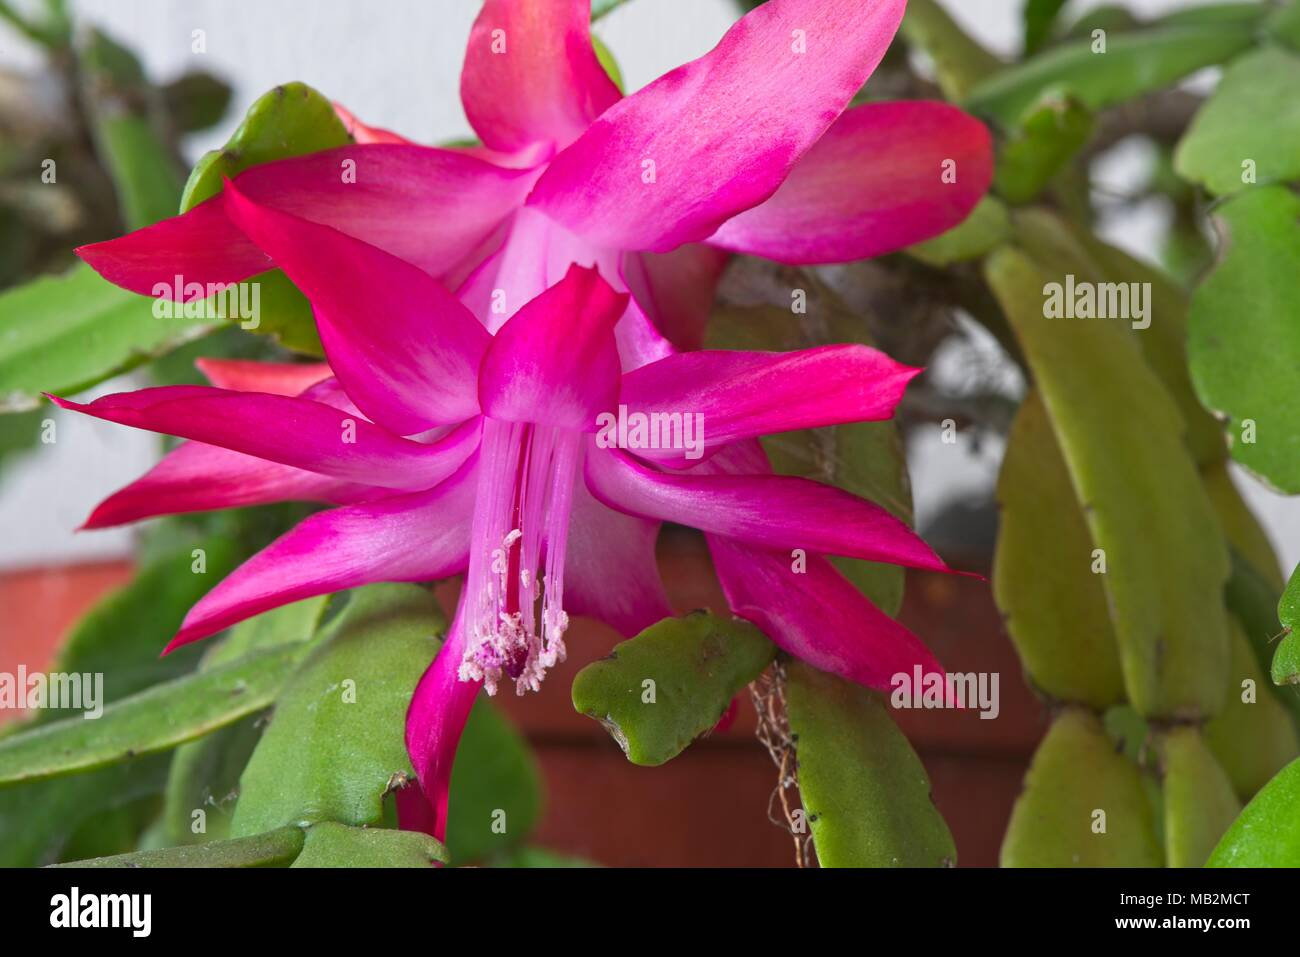 The Exotic Pink Flowers Of The Epiphytic Schlumbergera Cactus Or